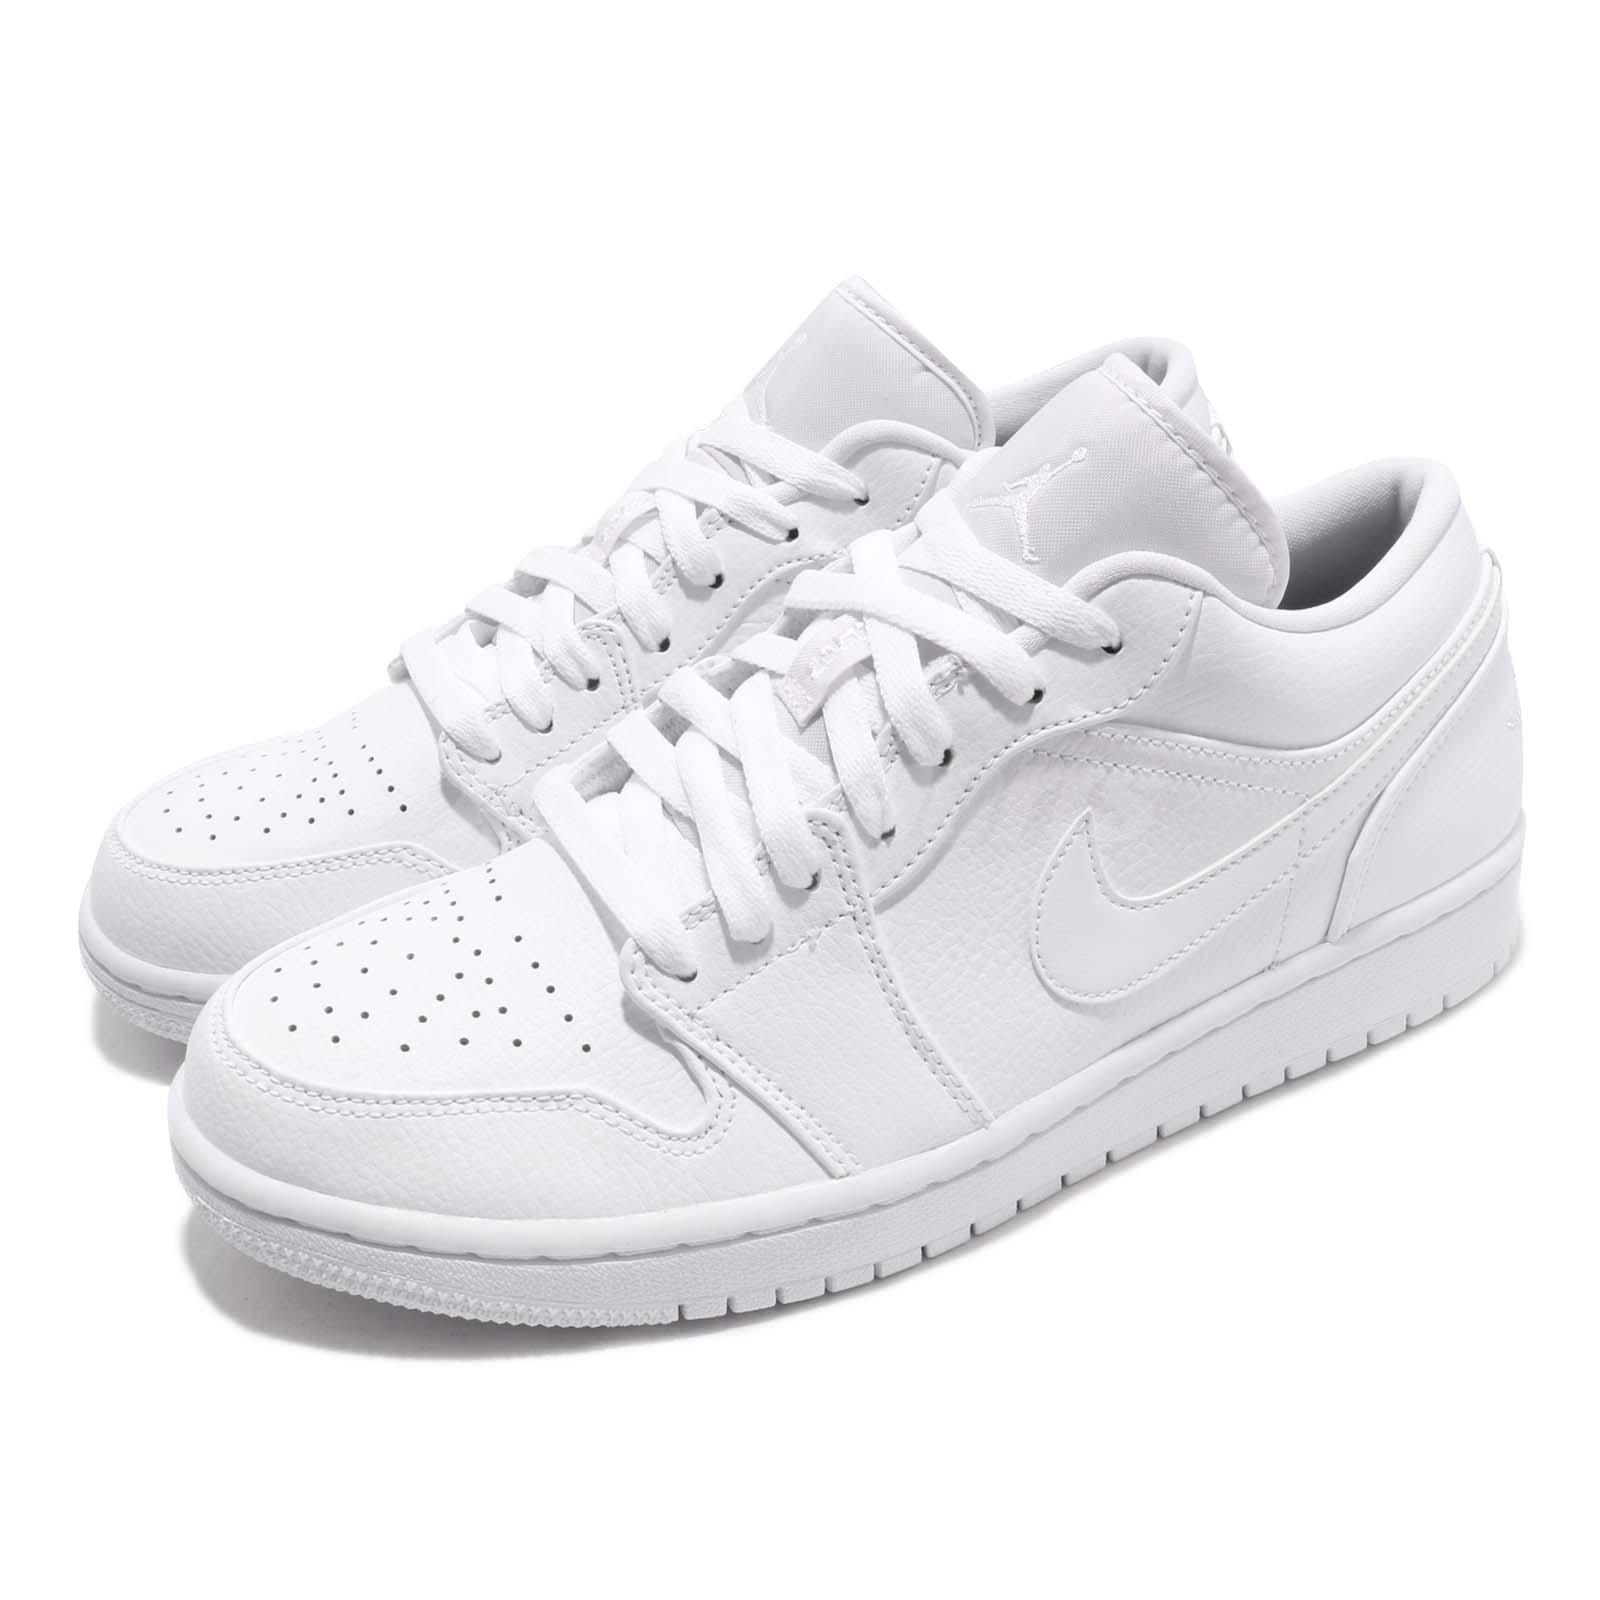 online store 8a267 f5941 Details about Nike Air Jordan 1 Low I AJ1 Triple White Men Classic Shoes  Sneakers 553558-112